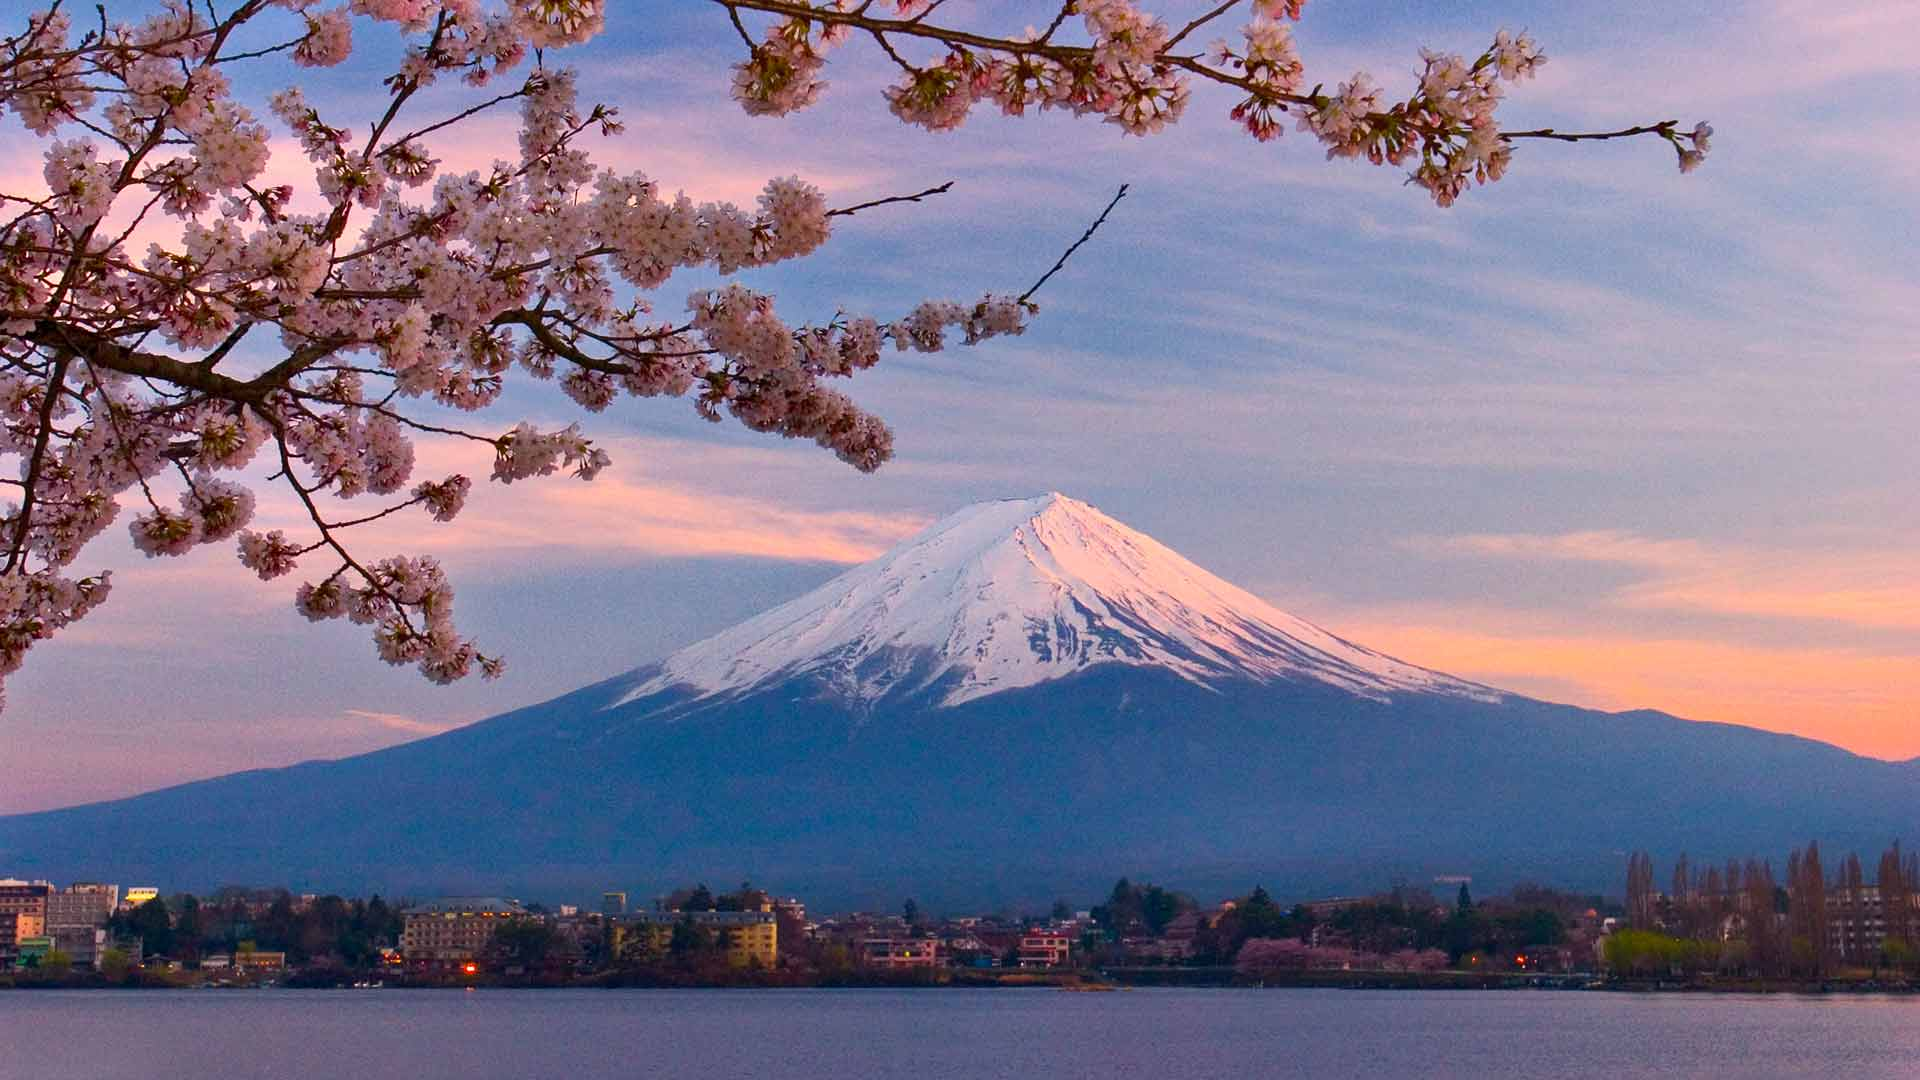 Mount Fuji scenery wallpaper Desktop Background Scenery Wallpapers 1920x1080